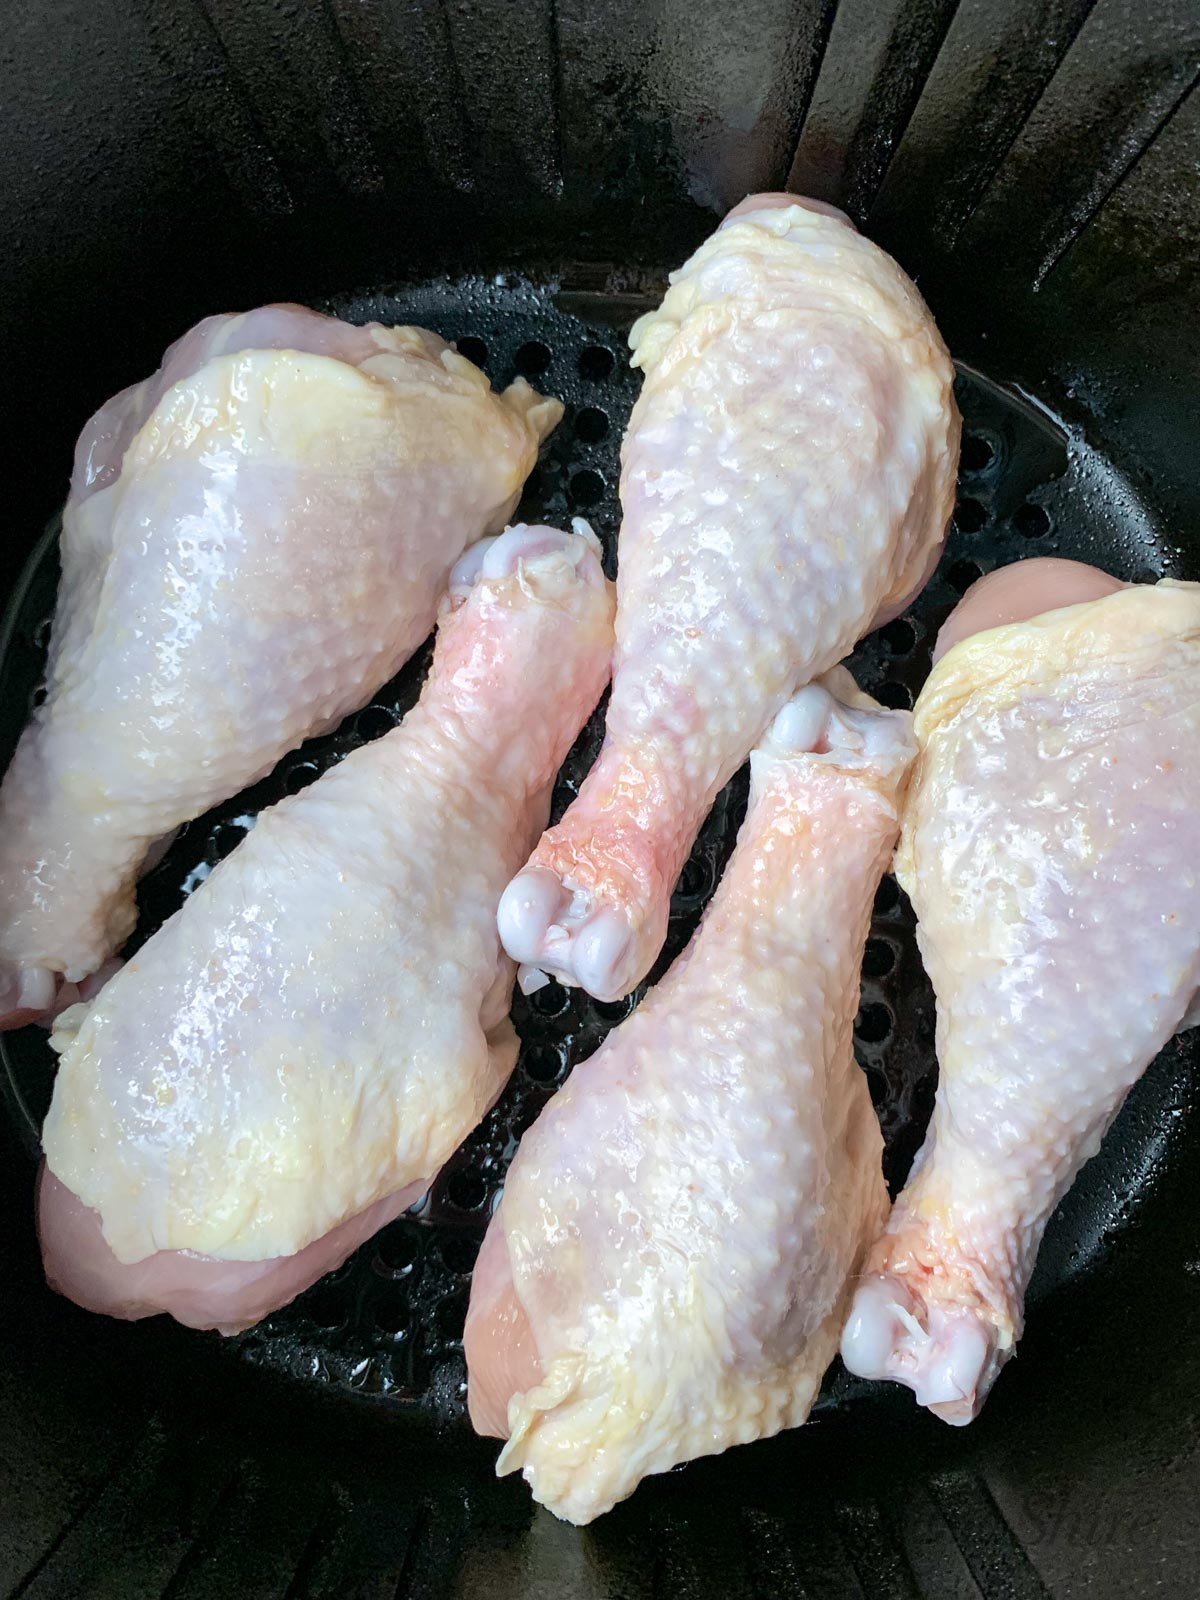 Raw chicken legs in an air fryer basket ready to be cooked.